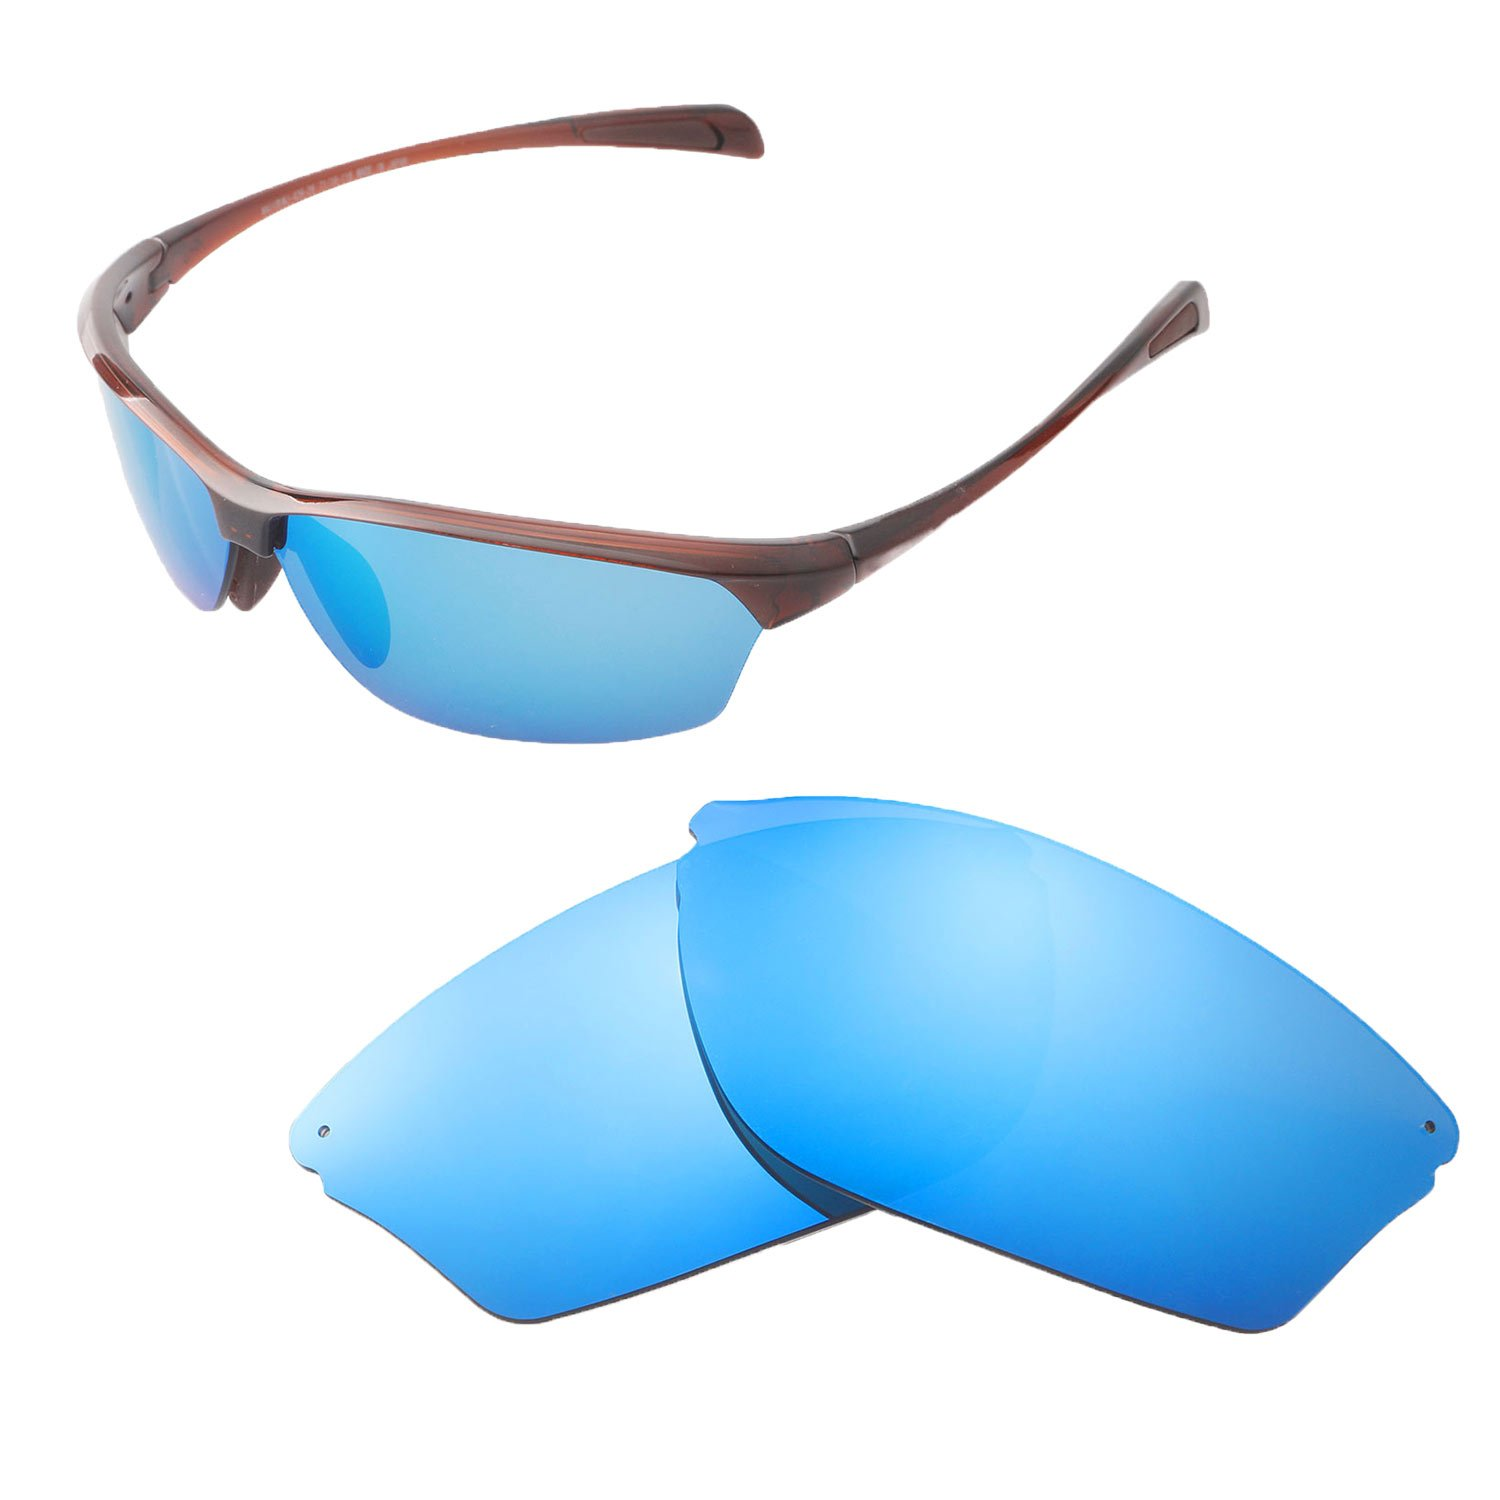 Walleva Replacement Lenses for Maui Jim Hot Sands Sunglasses - Multiple Options Available (Ice Blue - Polarized)